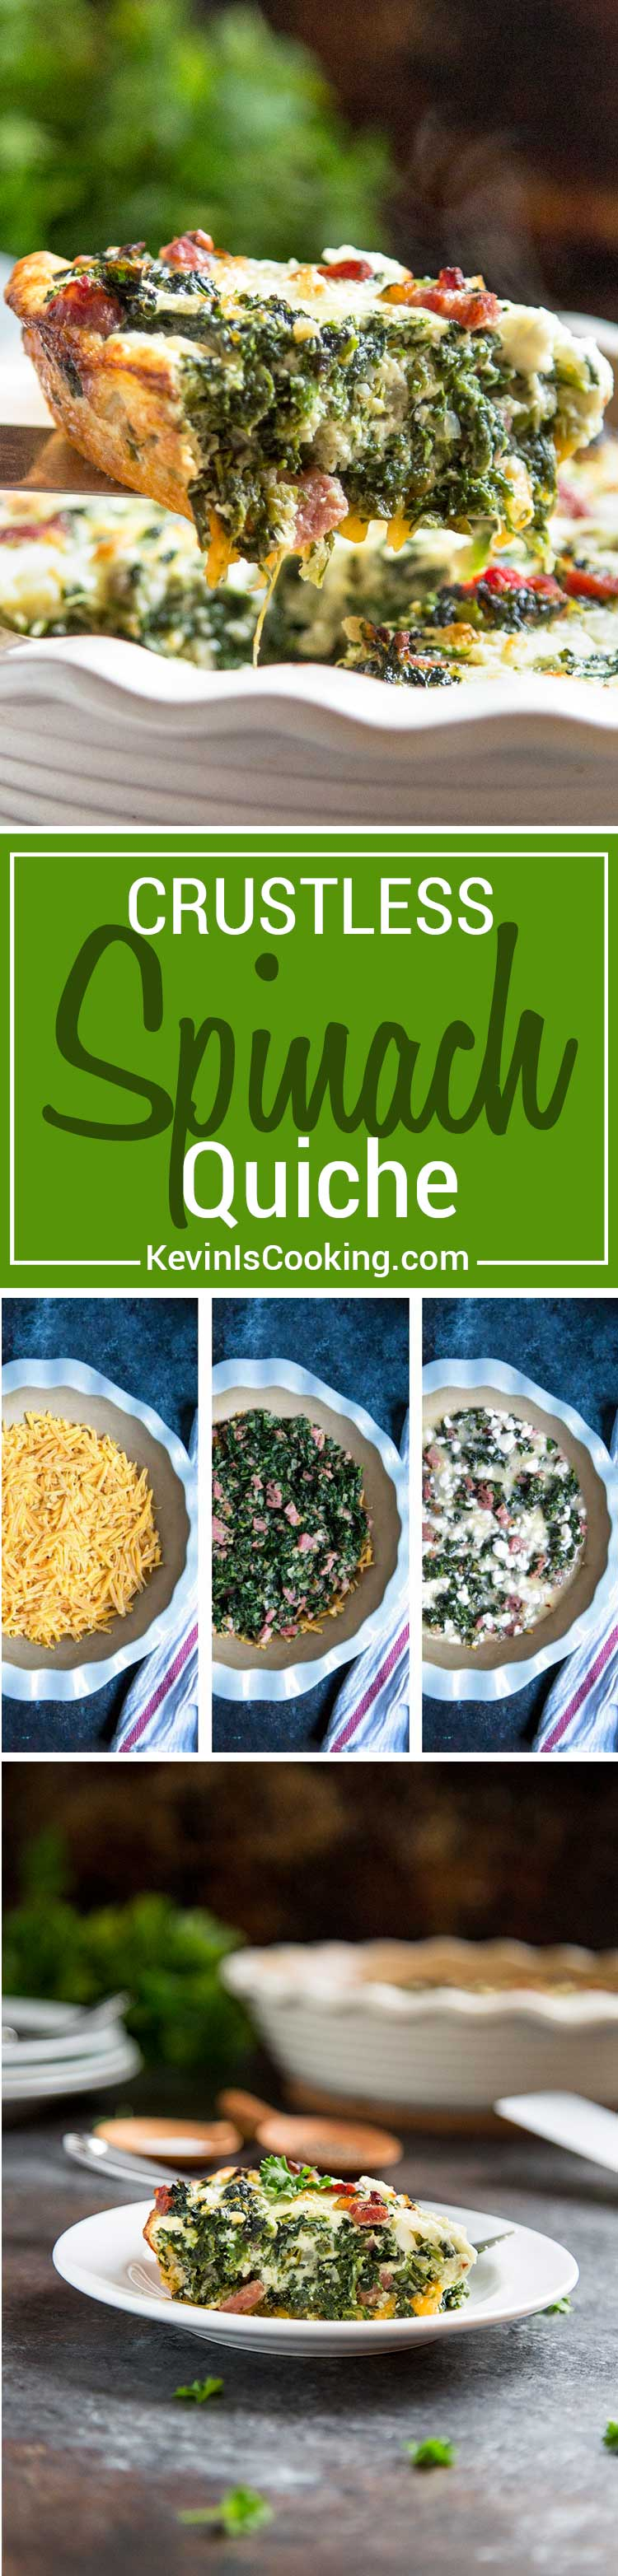 A healthy alternate to a traditional quiche with crust, this Crustless Spinach Quiche with Ham is packed with spinach, cheeses and ham for that lighter breakfast touch!